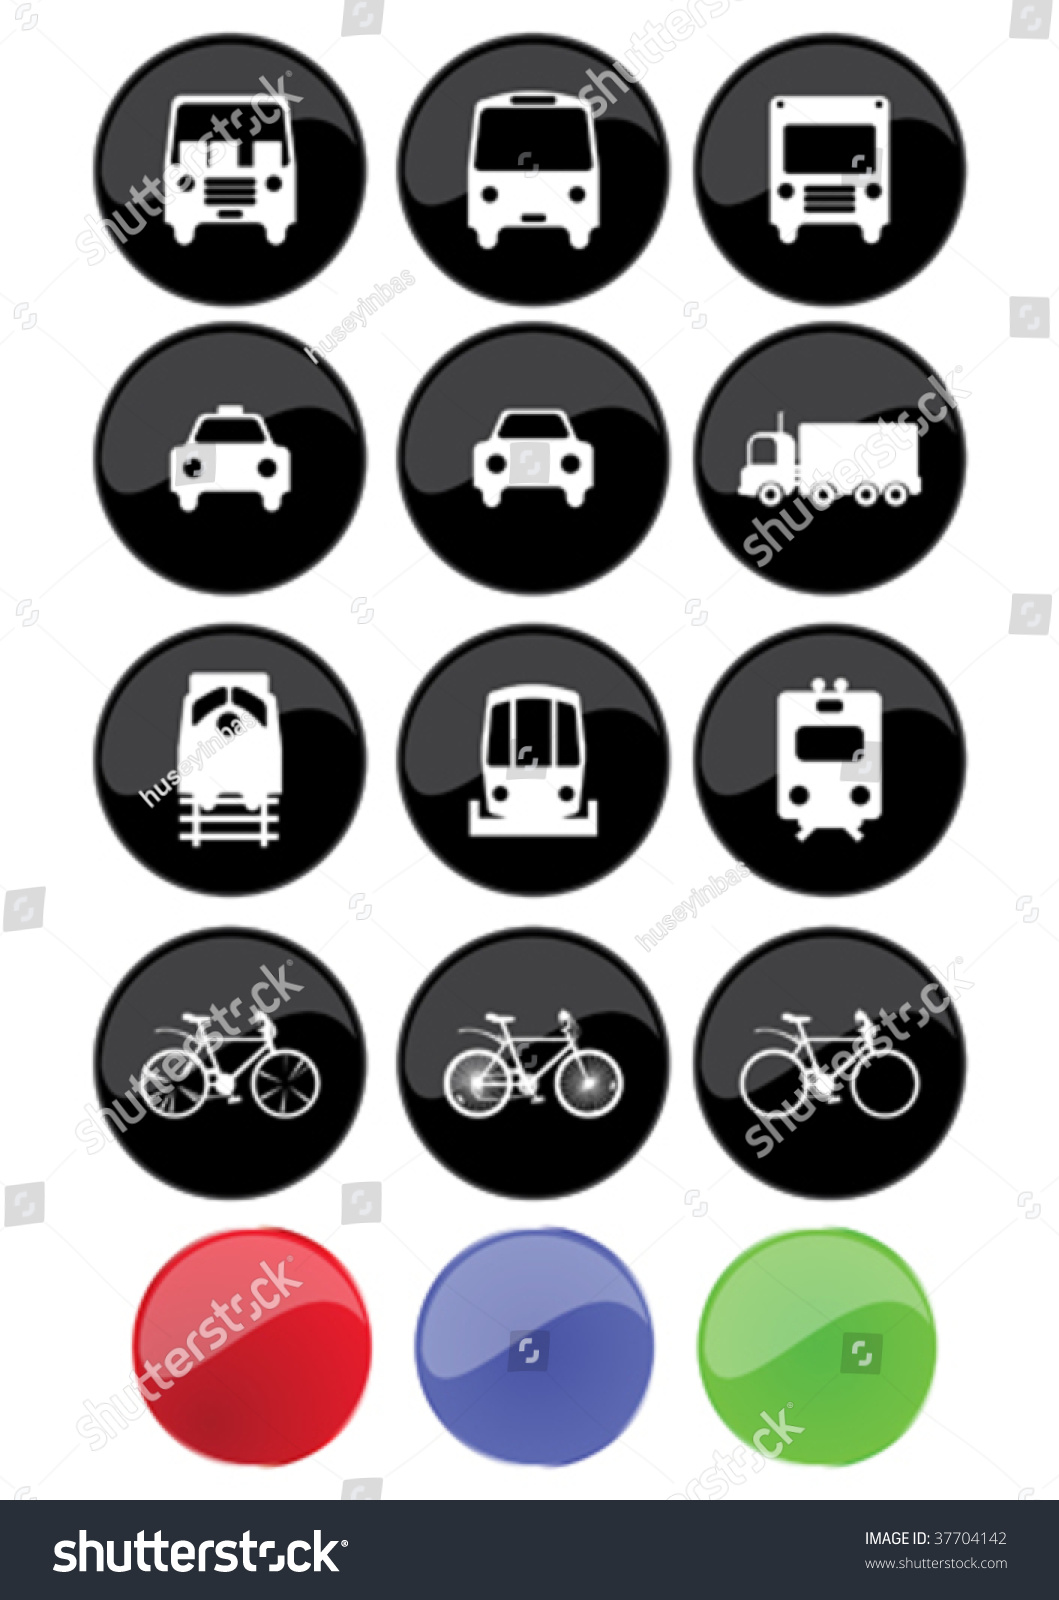 Symbols of vehicles images symbol and sign ideas traffic signs symbols vehicles stock vector 37704142 shutterstock traffic signs and symbols of vehicles buycottarizona images buycottarizona Images